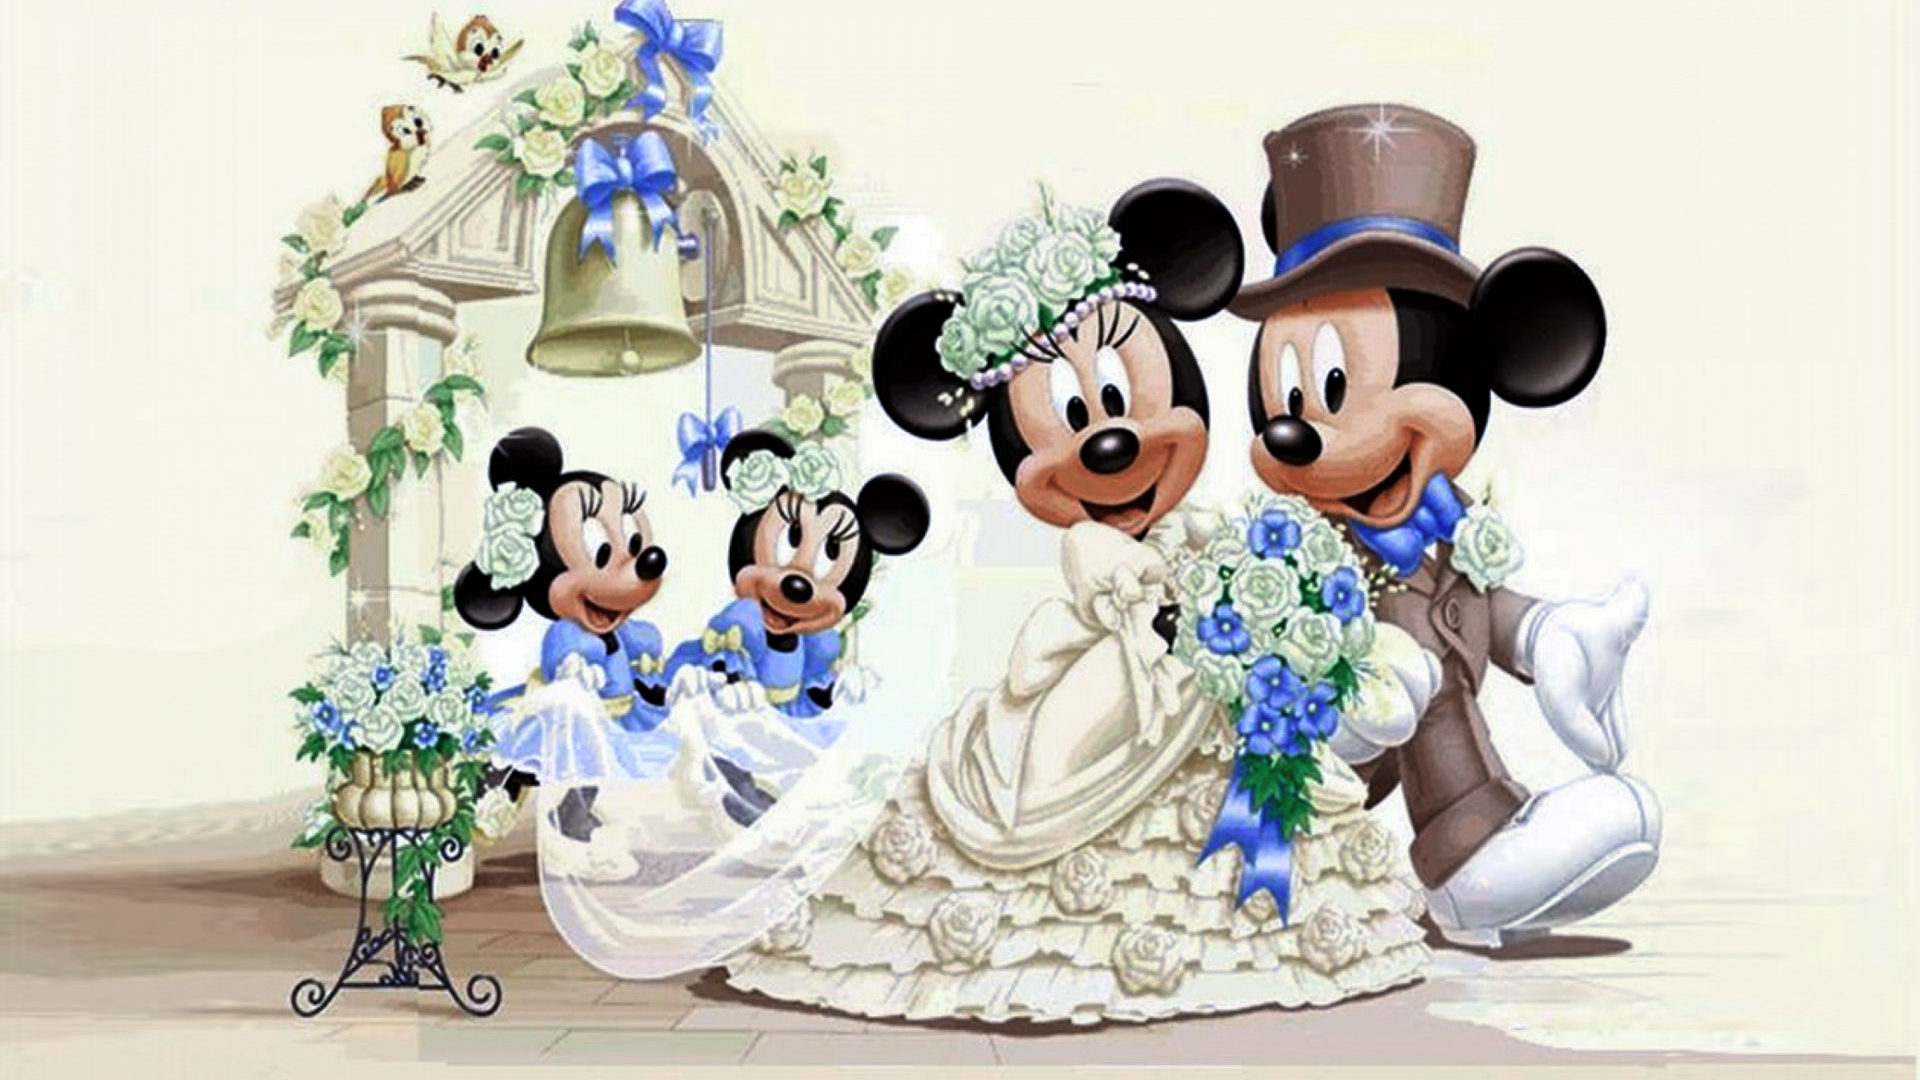 Cute Mickey Mouse And Minnie Mouse Wallpaper Mickey Mouse And Minnie Mouse Wedding Wallpaper Hd